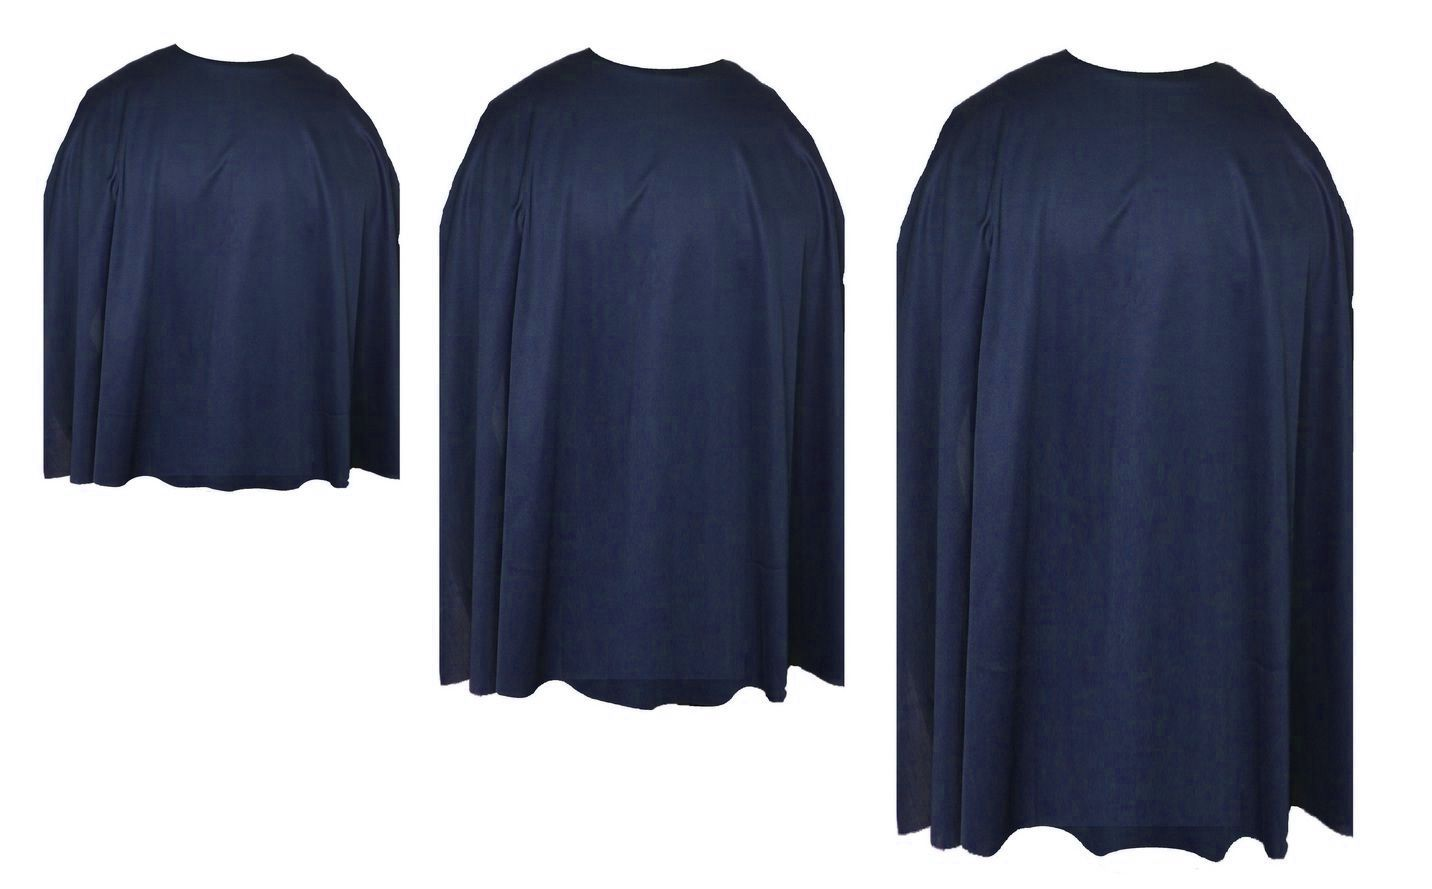 navy blue capes